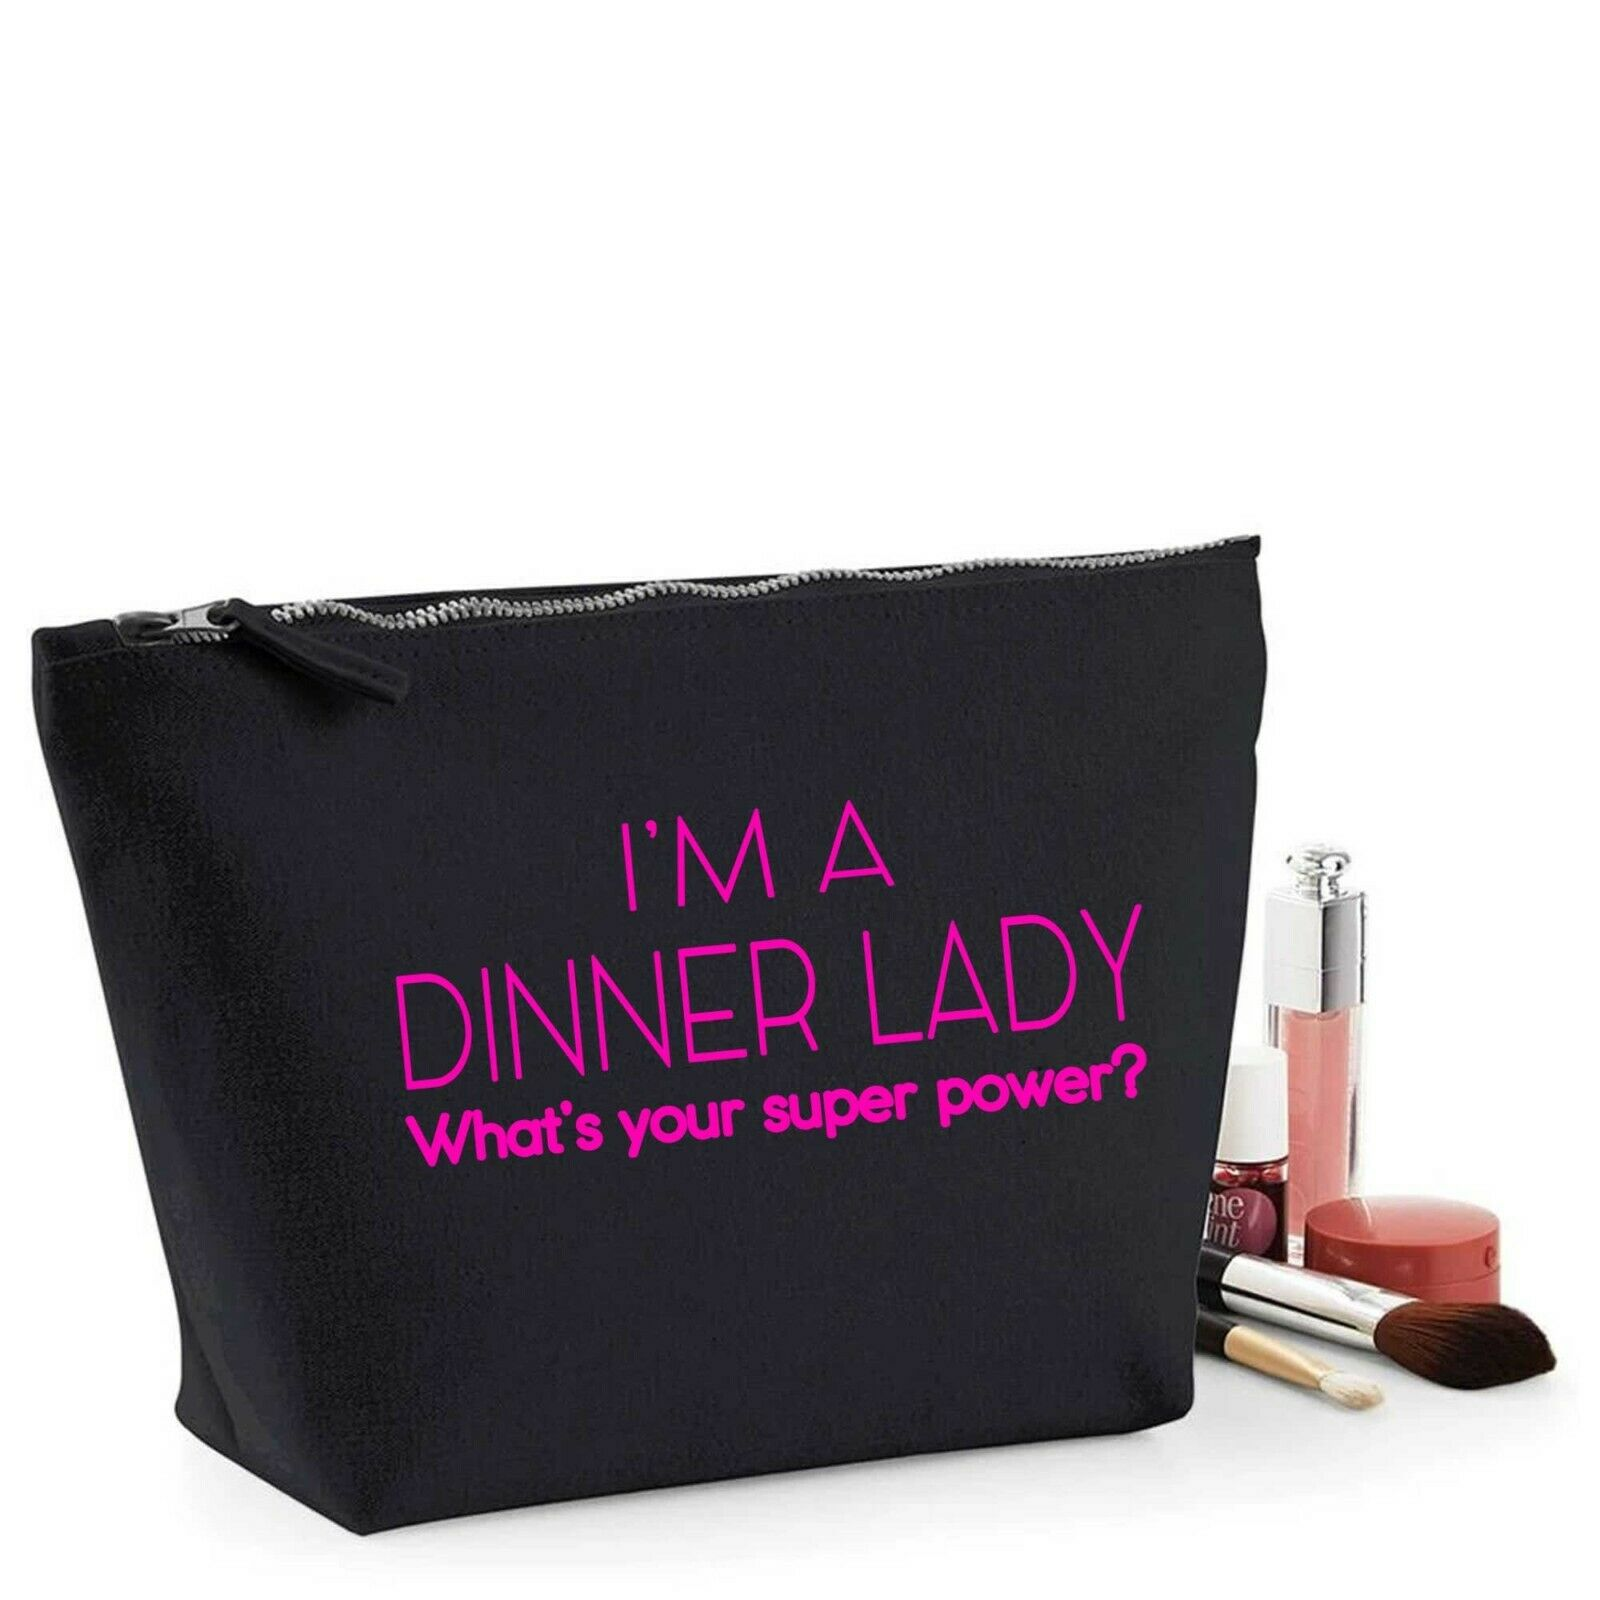 Dinner Lady Thank You Gift Women's Make Up Makeup Accessory Bag Pink Print